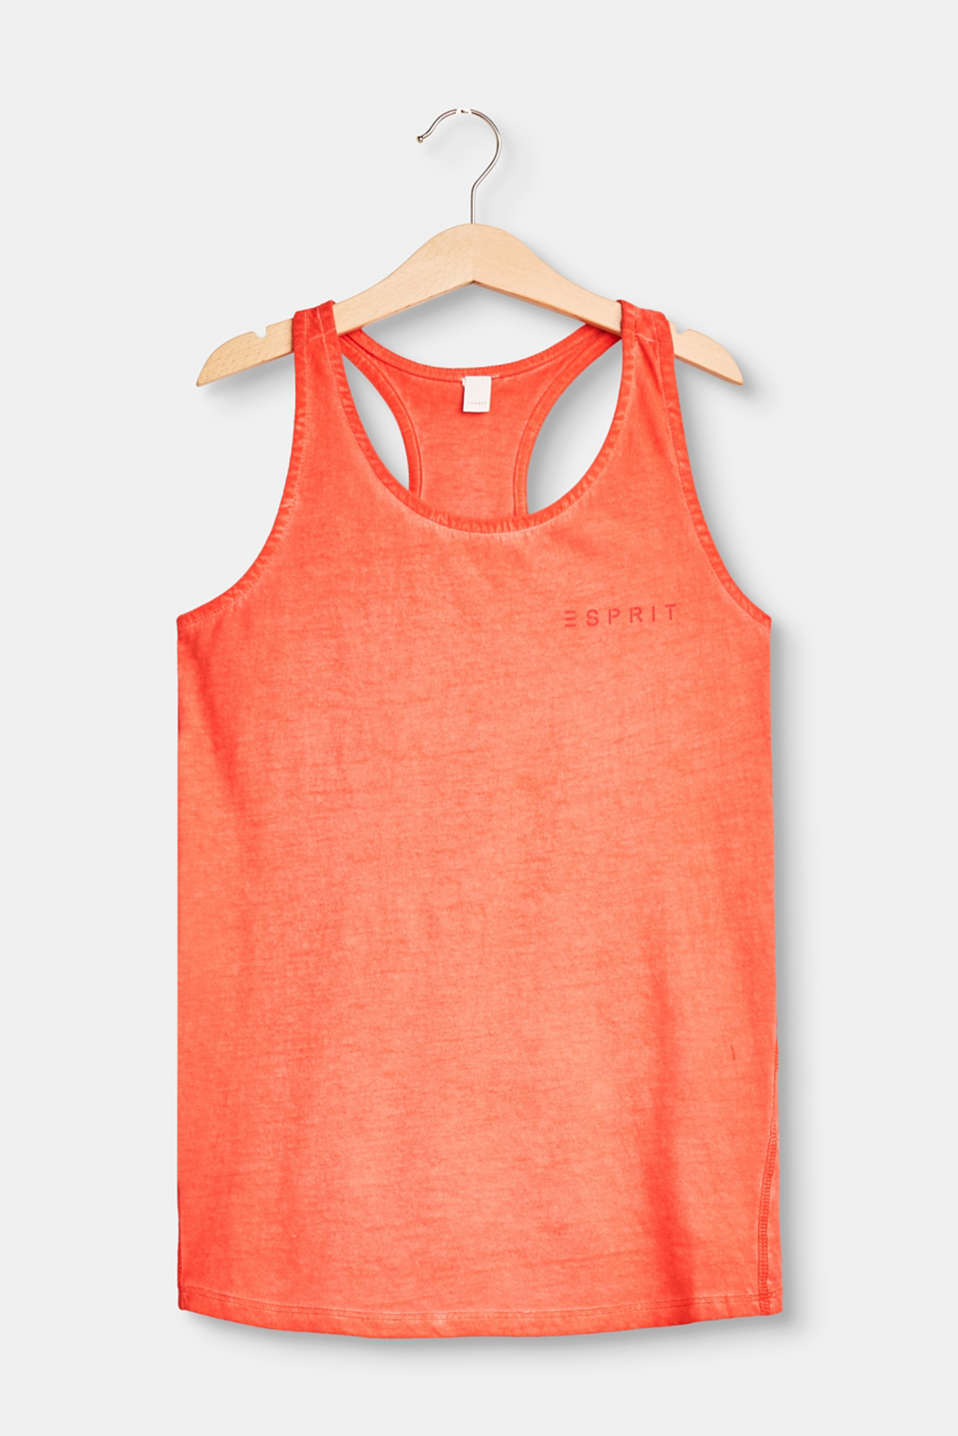 Esprit - A-line vest top with a print on the back